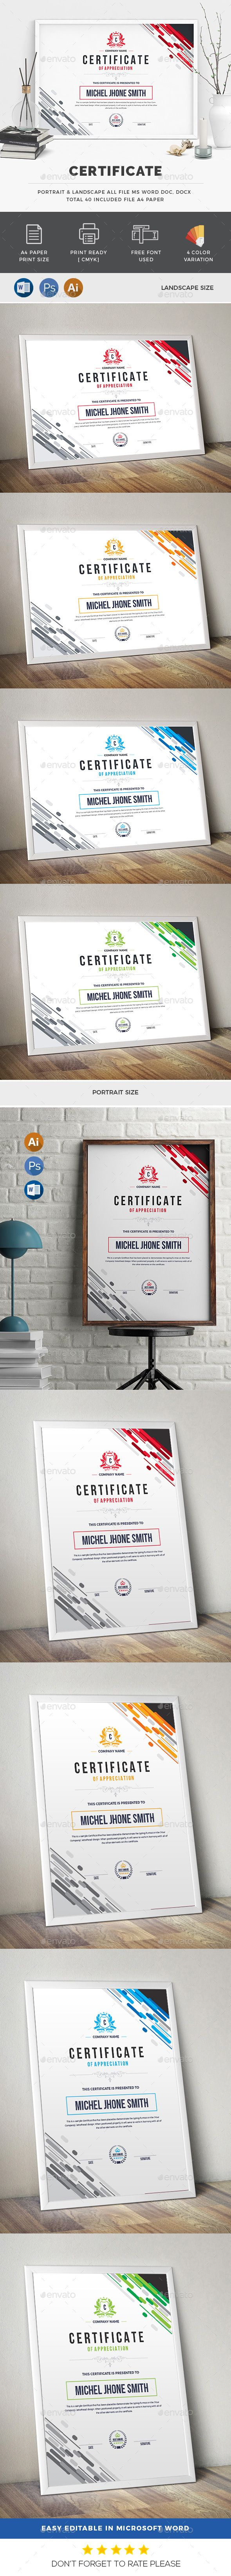 Color #Certificate - Certificates #Stationery Download here: https://graphicriver.net/item/color-certificate/20092145?ref=alena994